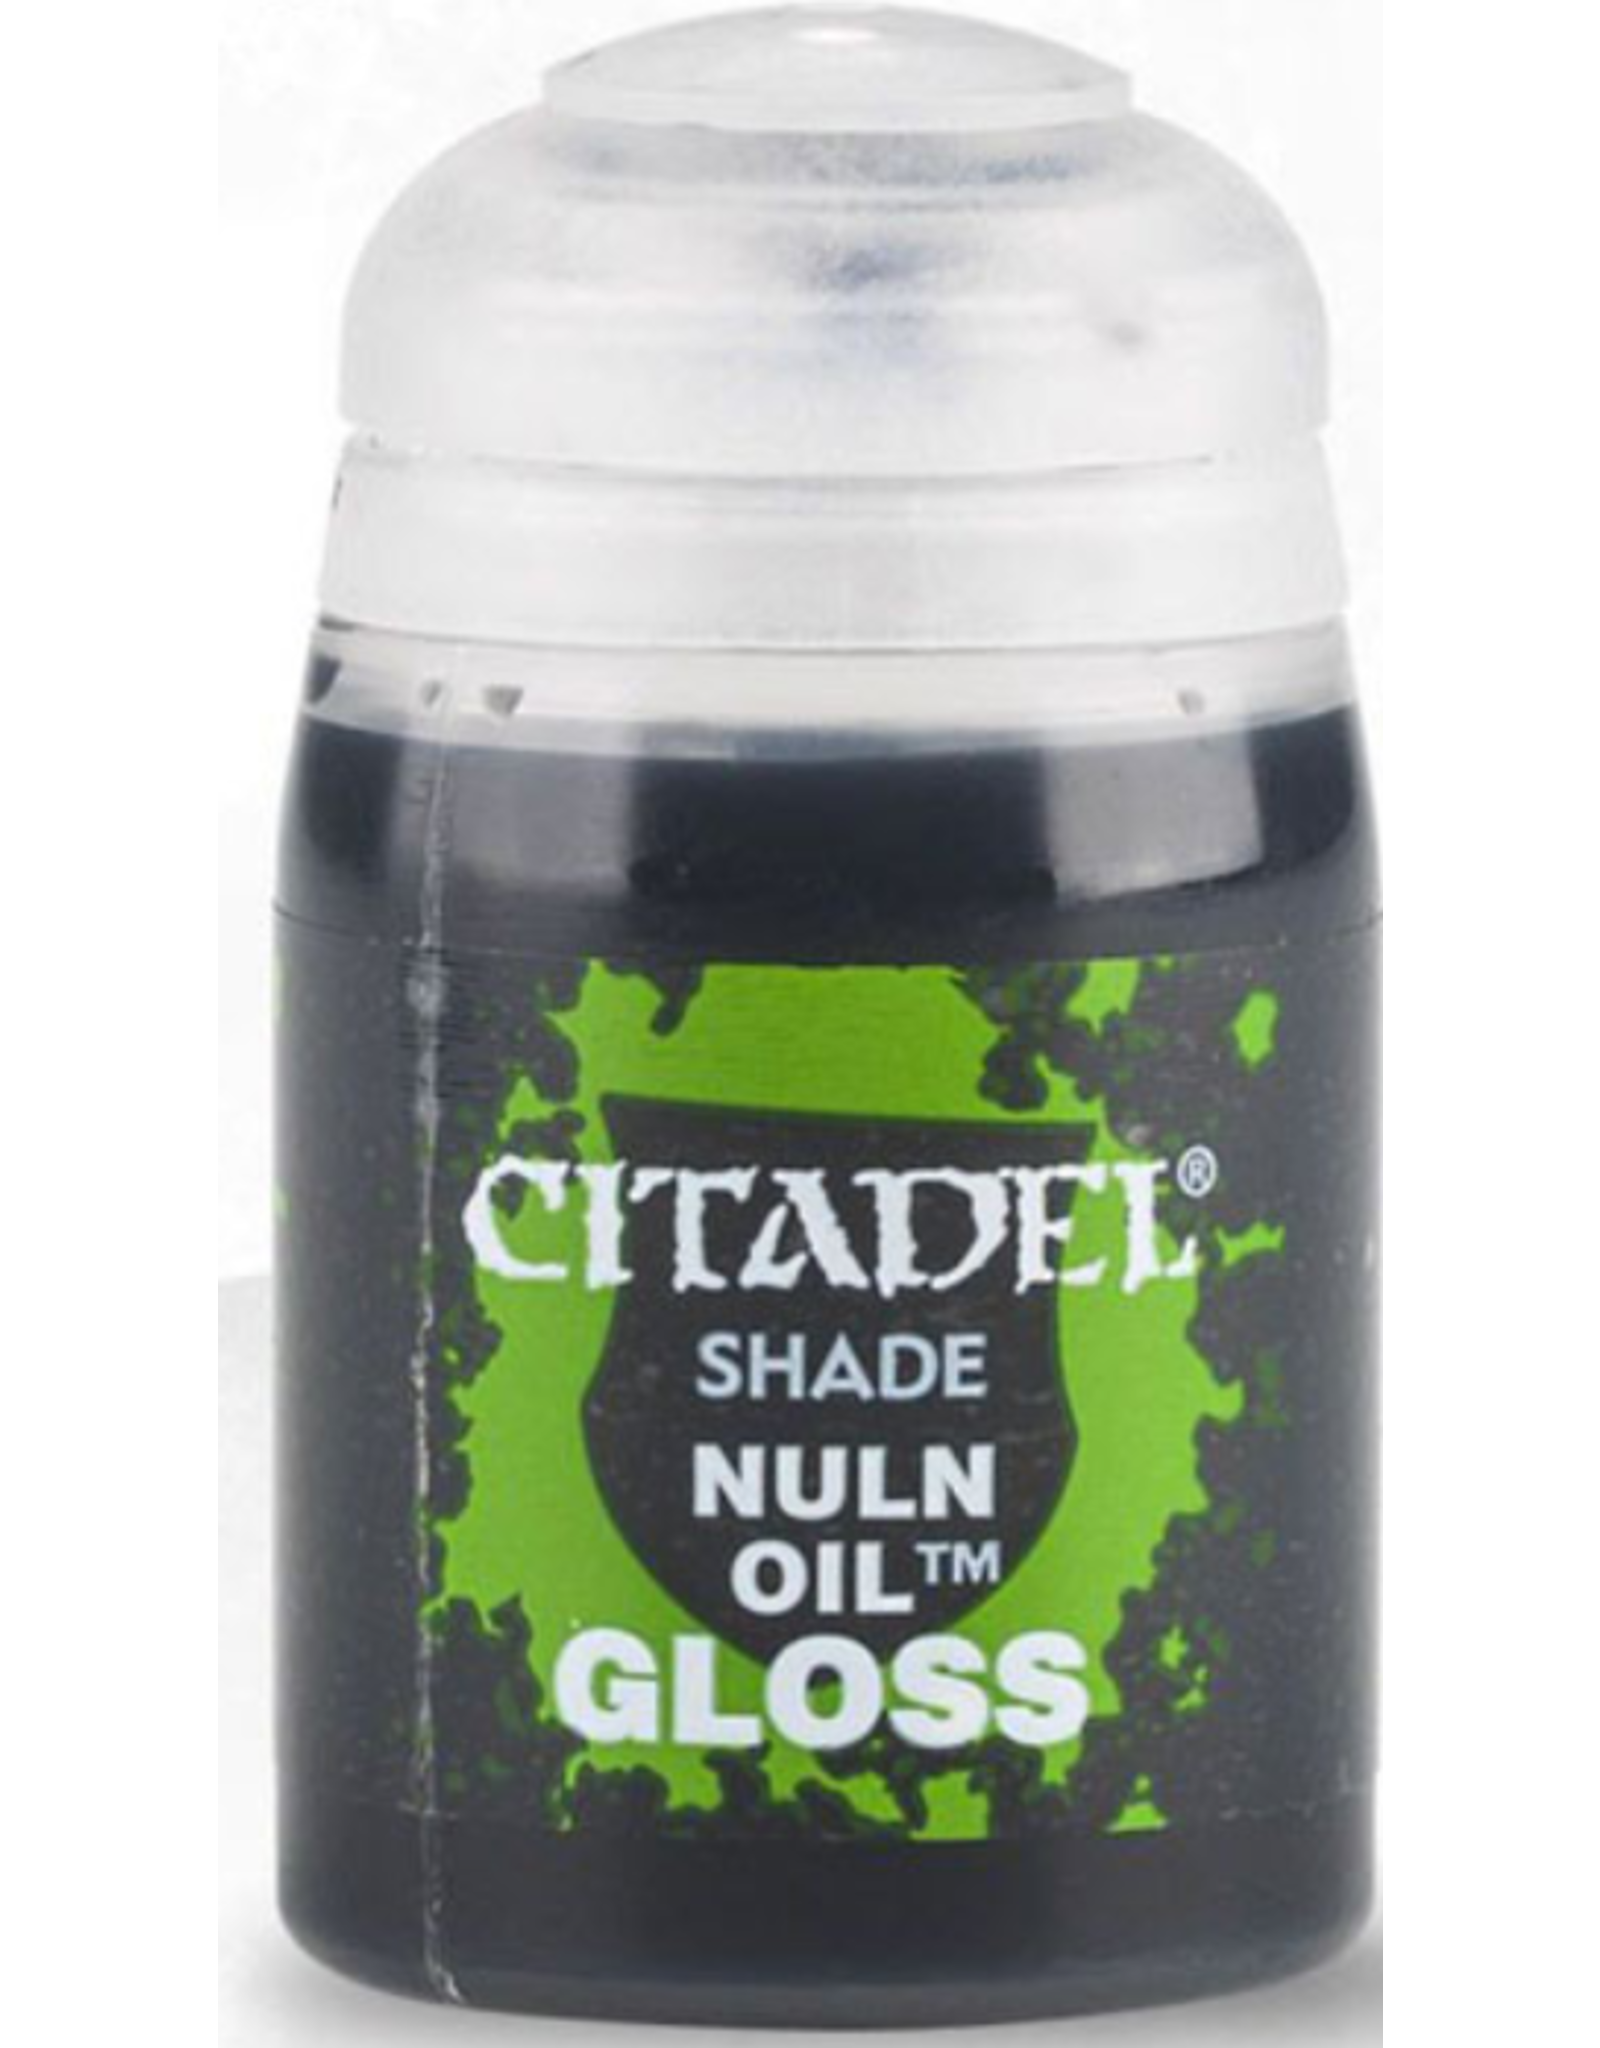 Games Workshop Citadel: Shade Nuln Oil Gloss